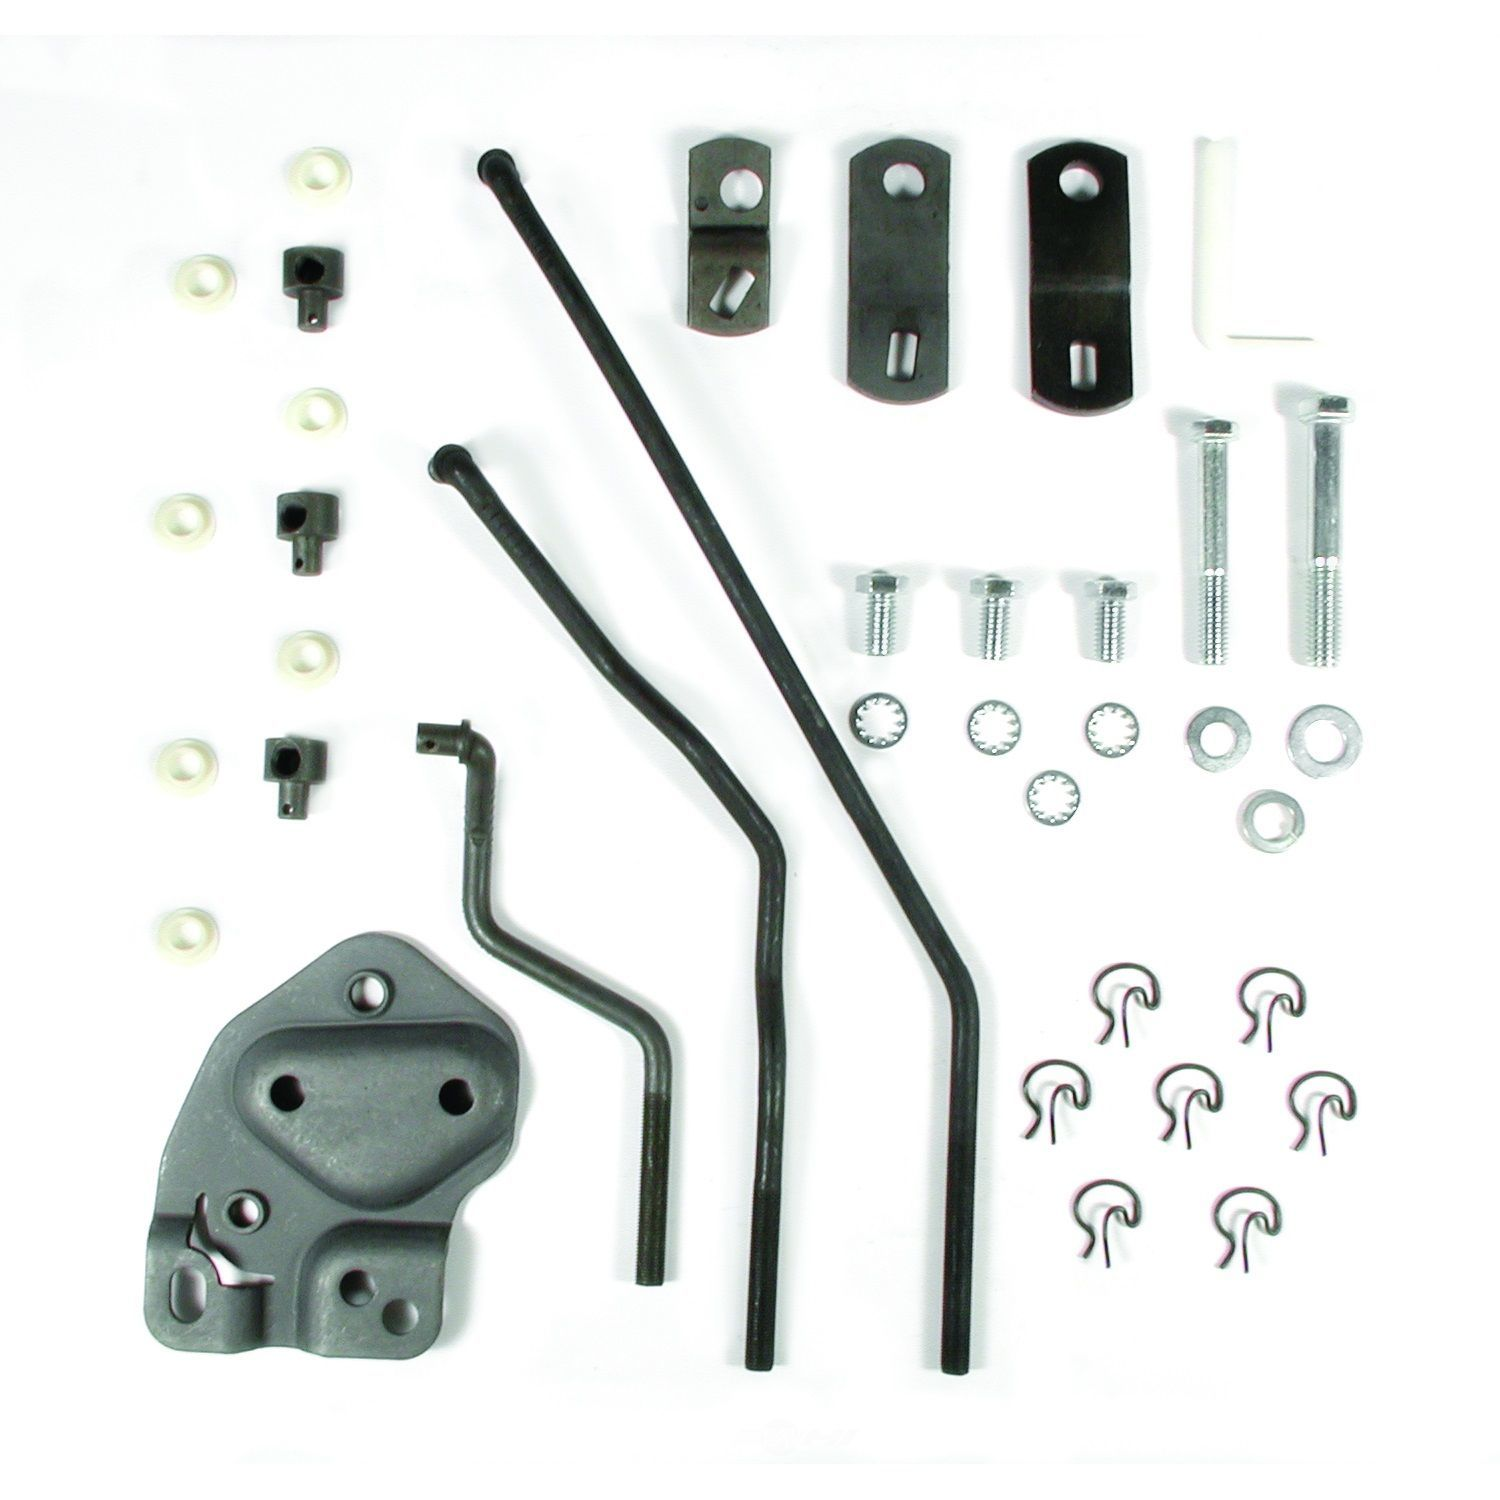 HURST - Manual Transmission Shifter Lever Kit - HUR 3733163